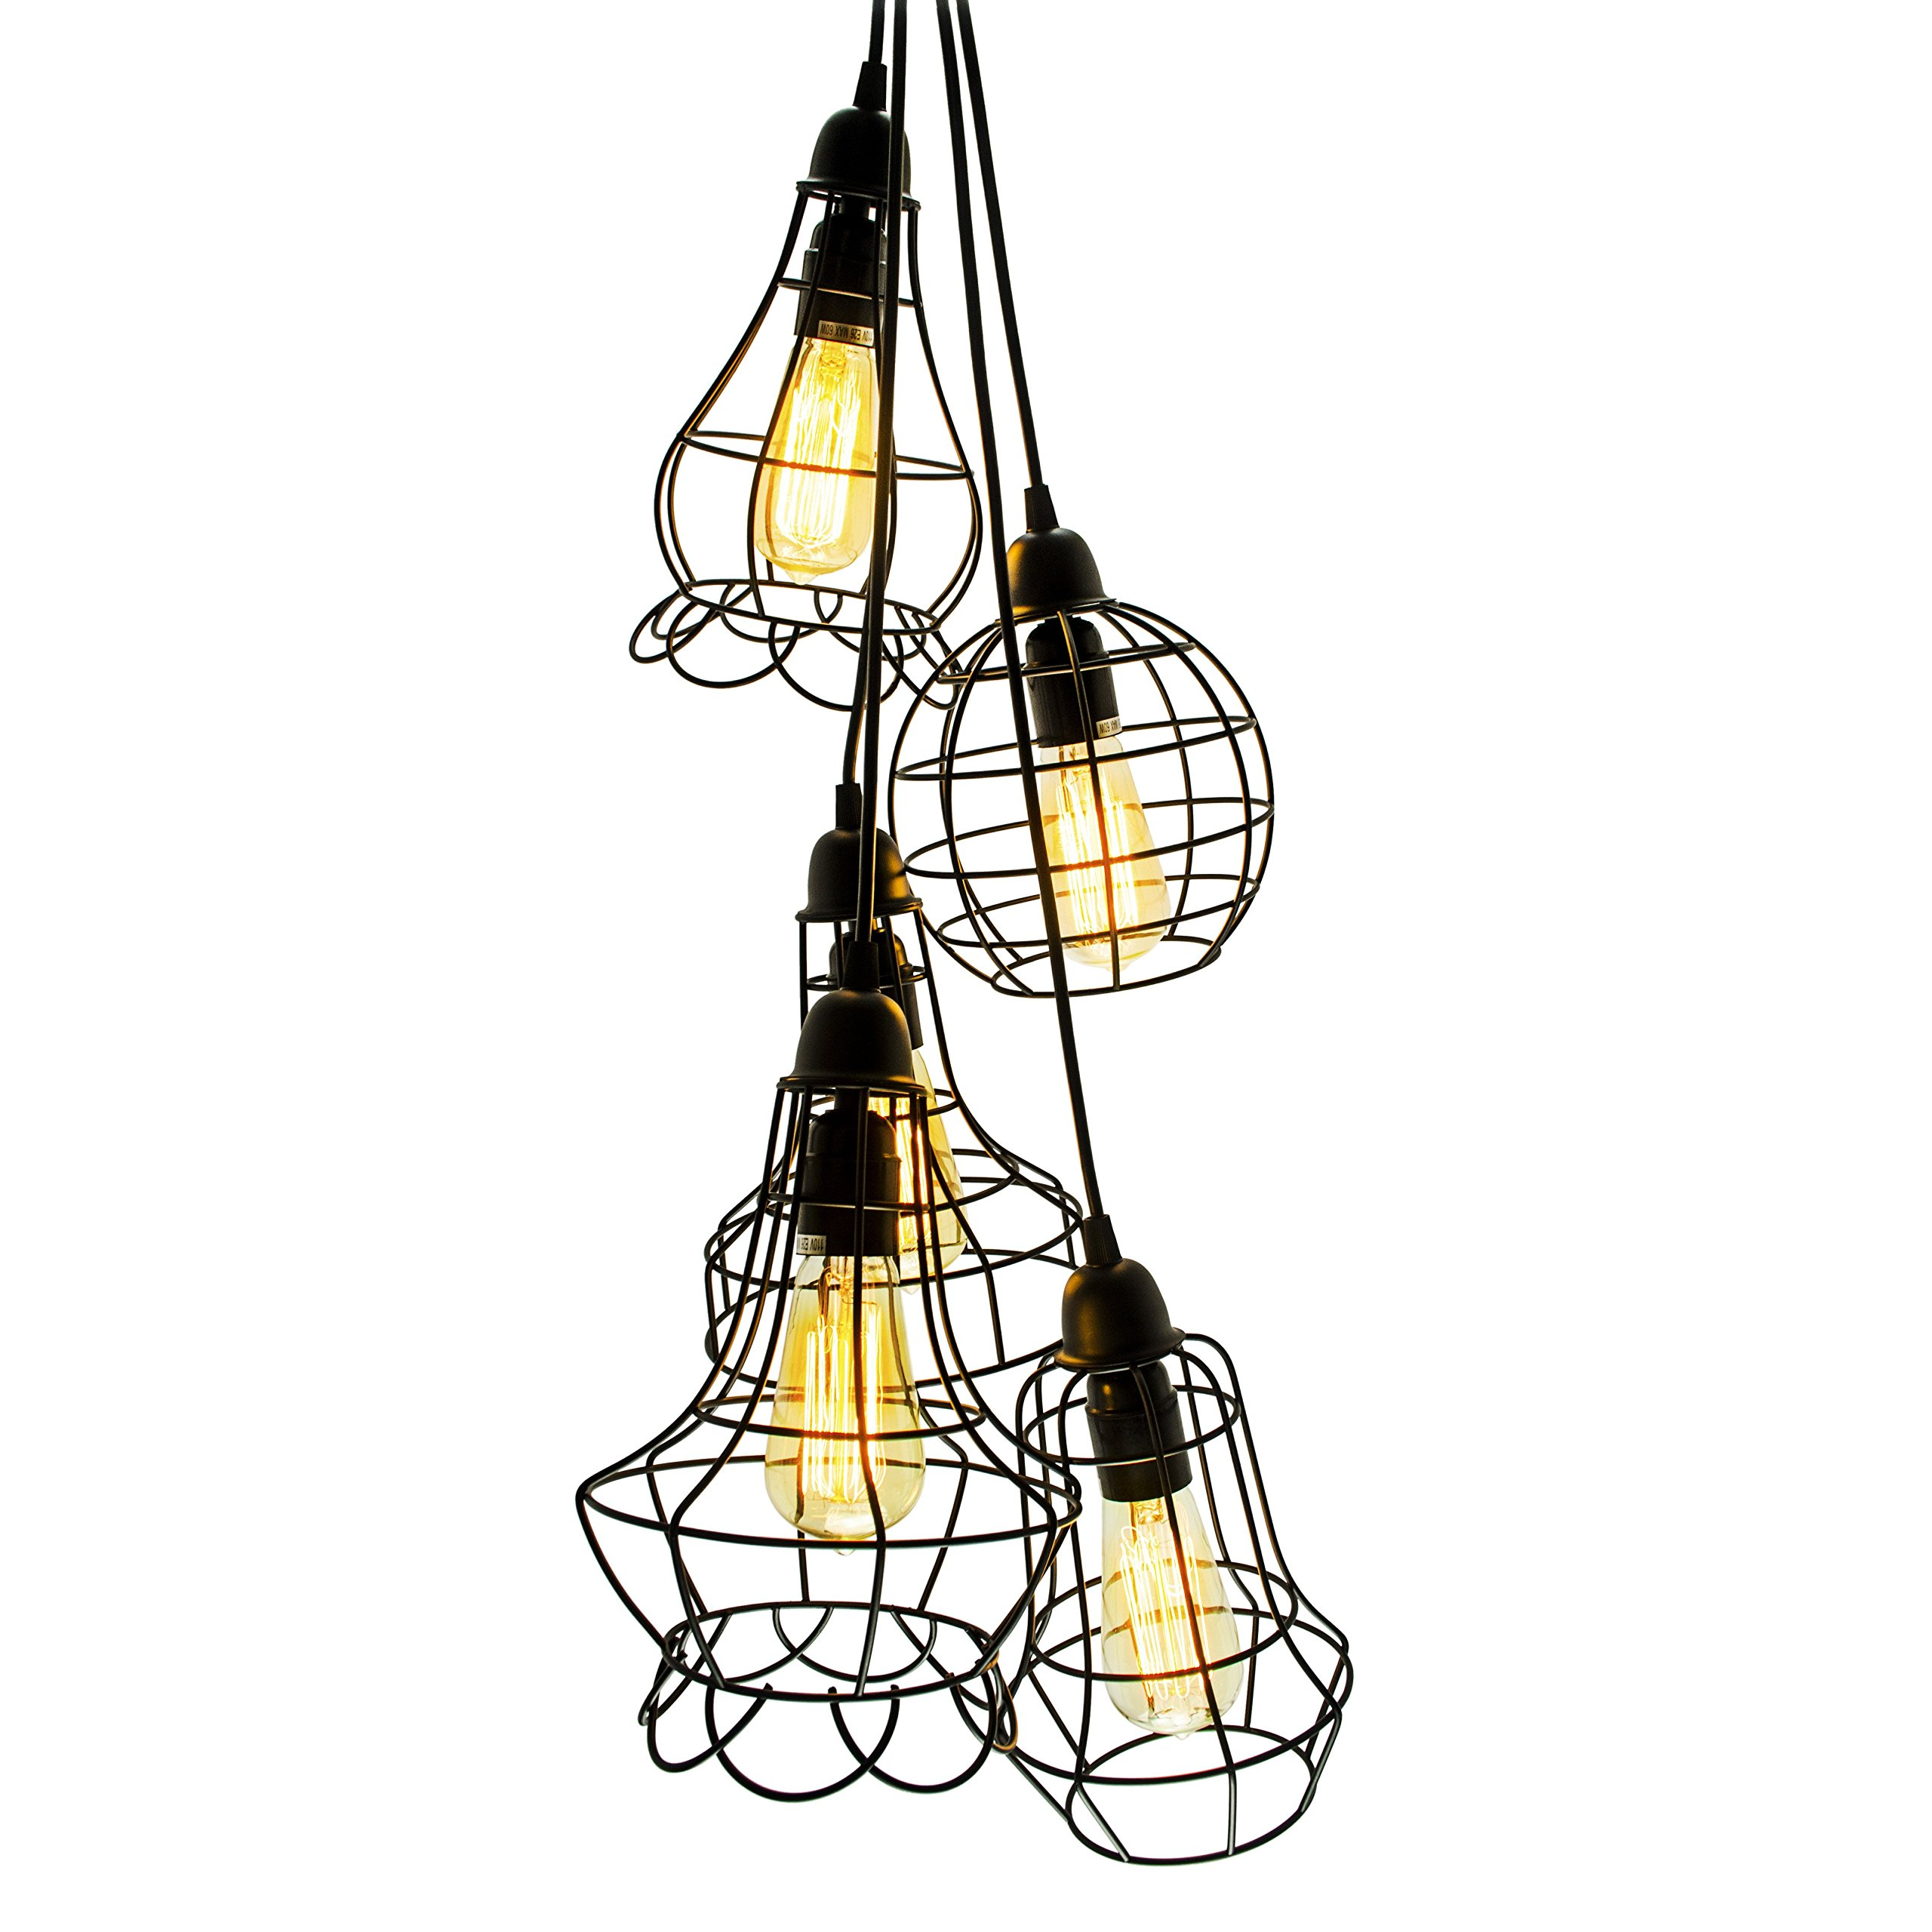 Electro_bp;rustic Barn Metal Chandelier Max 200w with 5 Light Bulbs Included